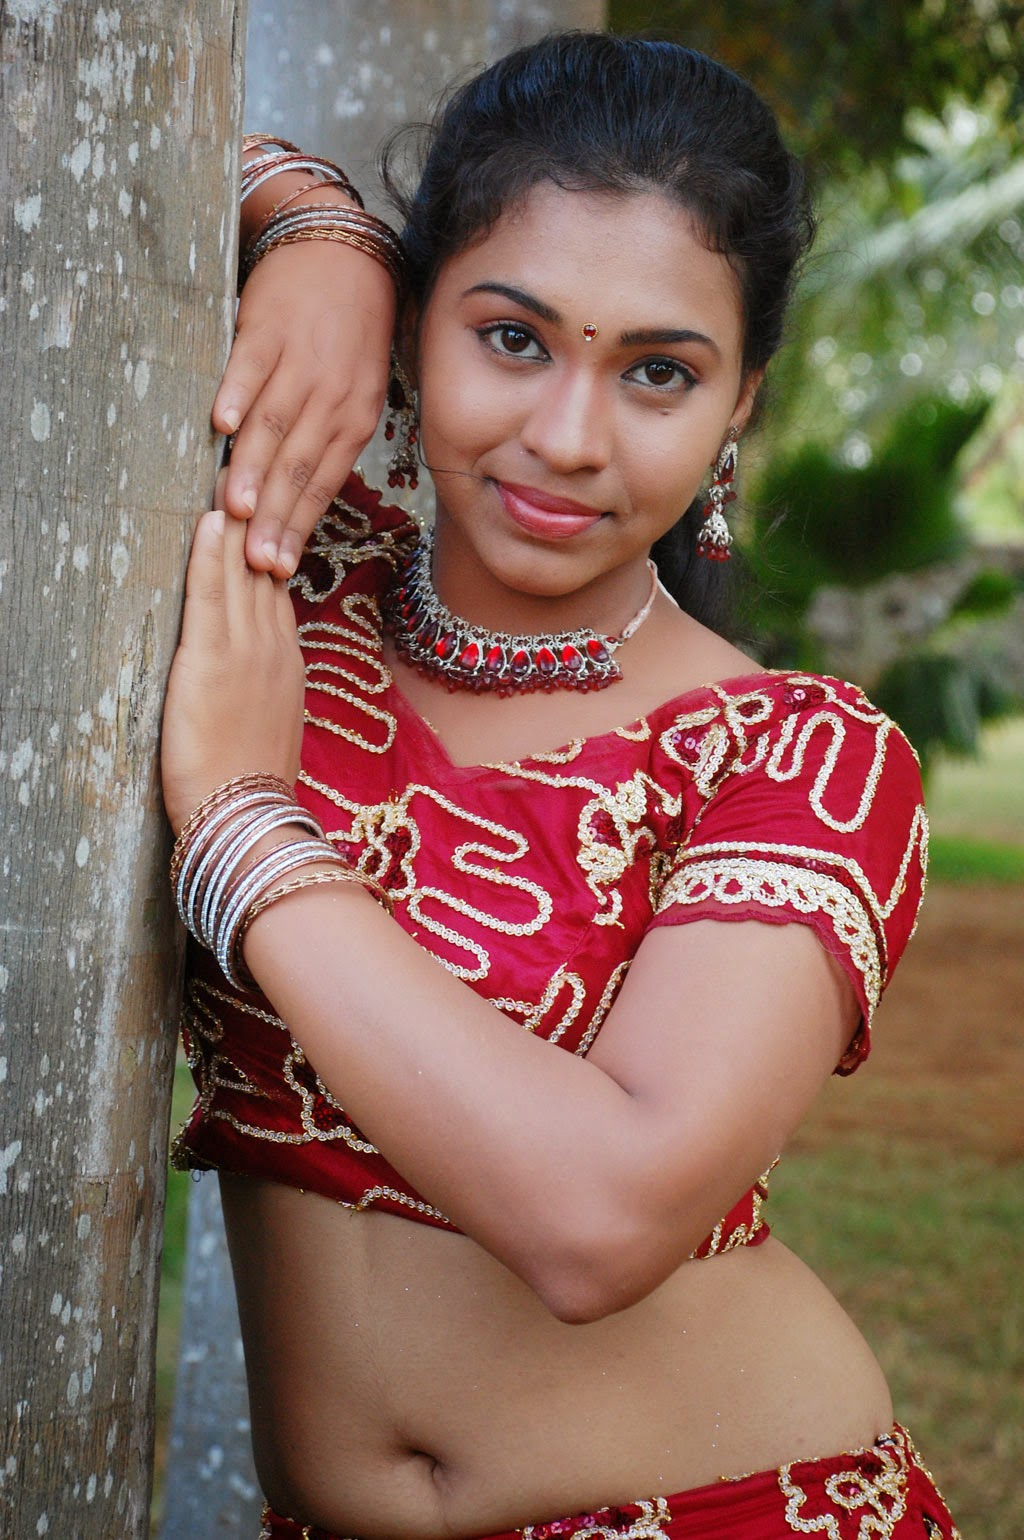 hindu single women in argonia Hindu singles - sign up and you'll find single women and men who are looking for relationship an online dating is free to join for unintrusive flirting and uncompromising dating with singles living in your area.